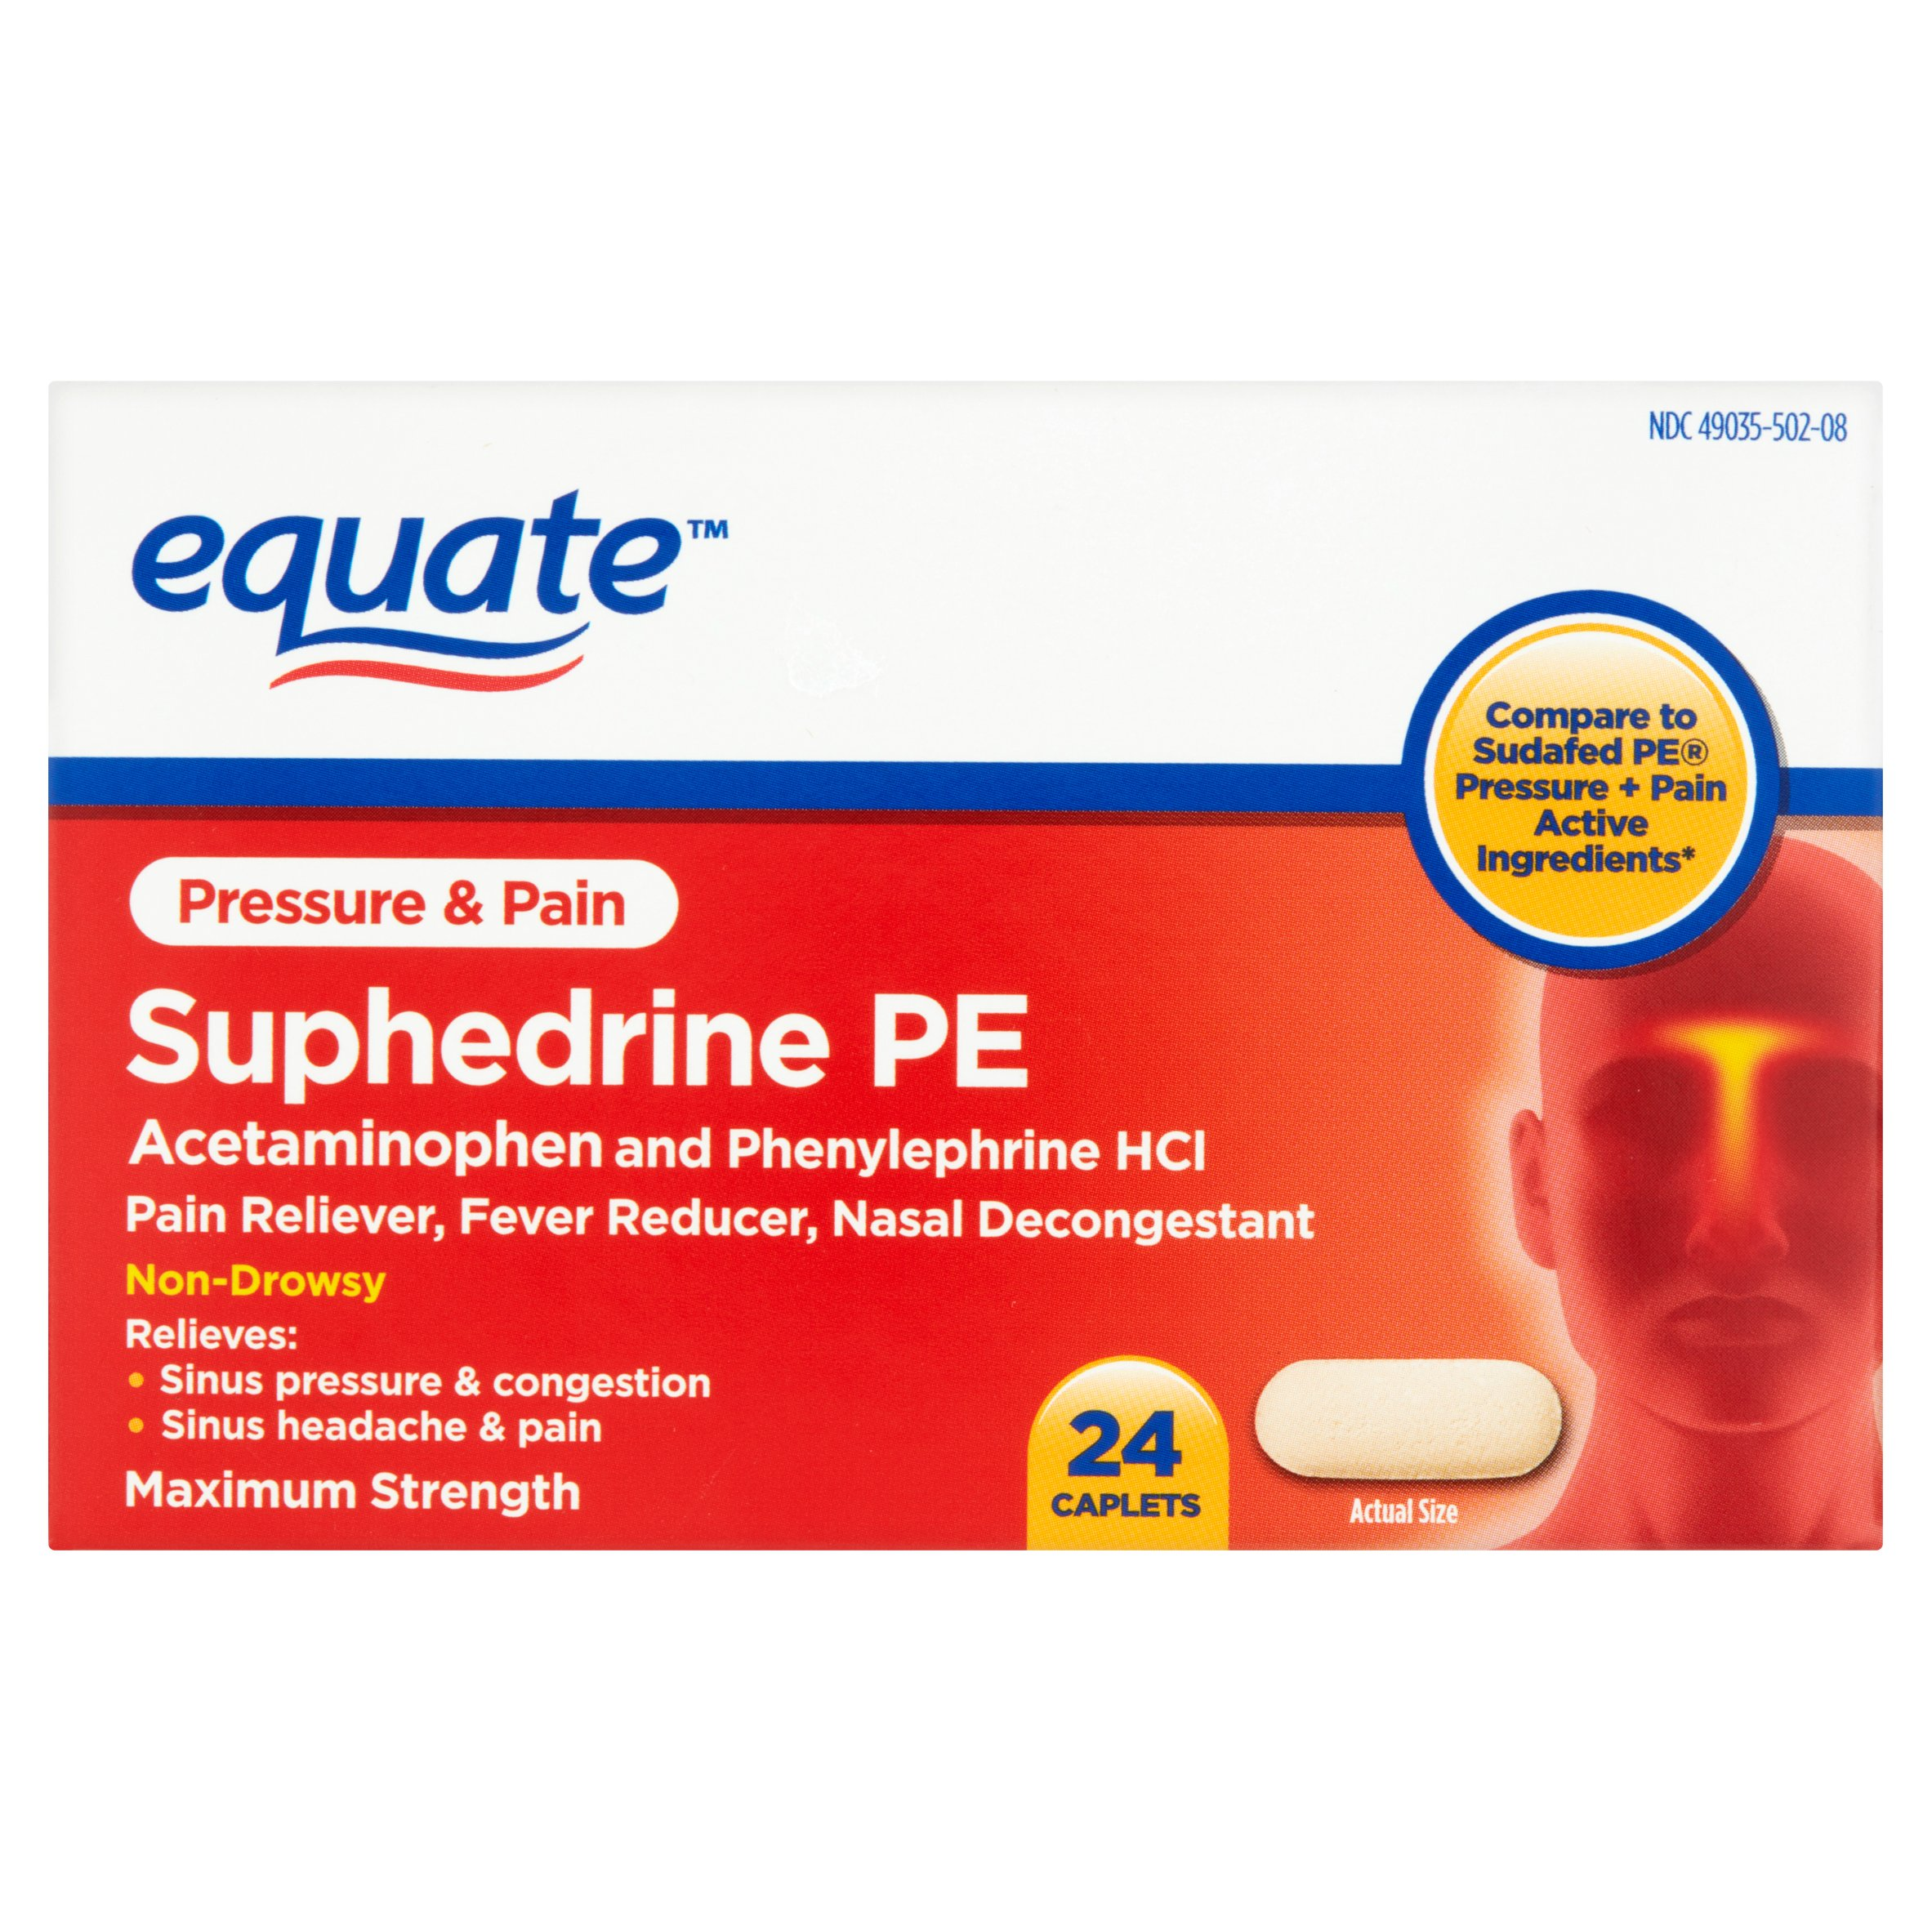 Equate Pressure & Pain Suphedrine PE Caplets, 5 mg, 24 Ct